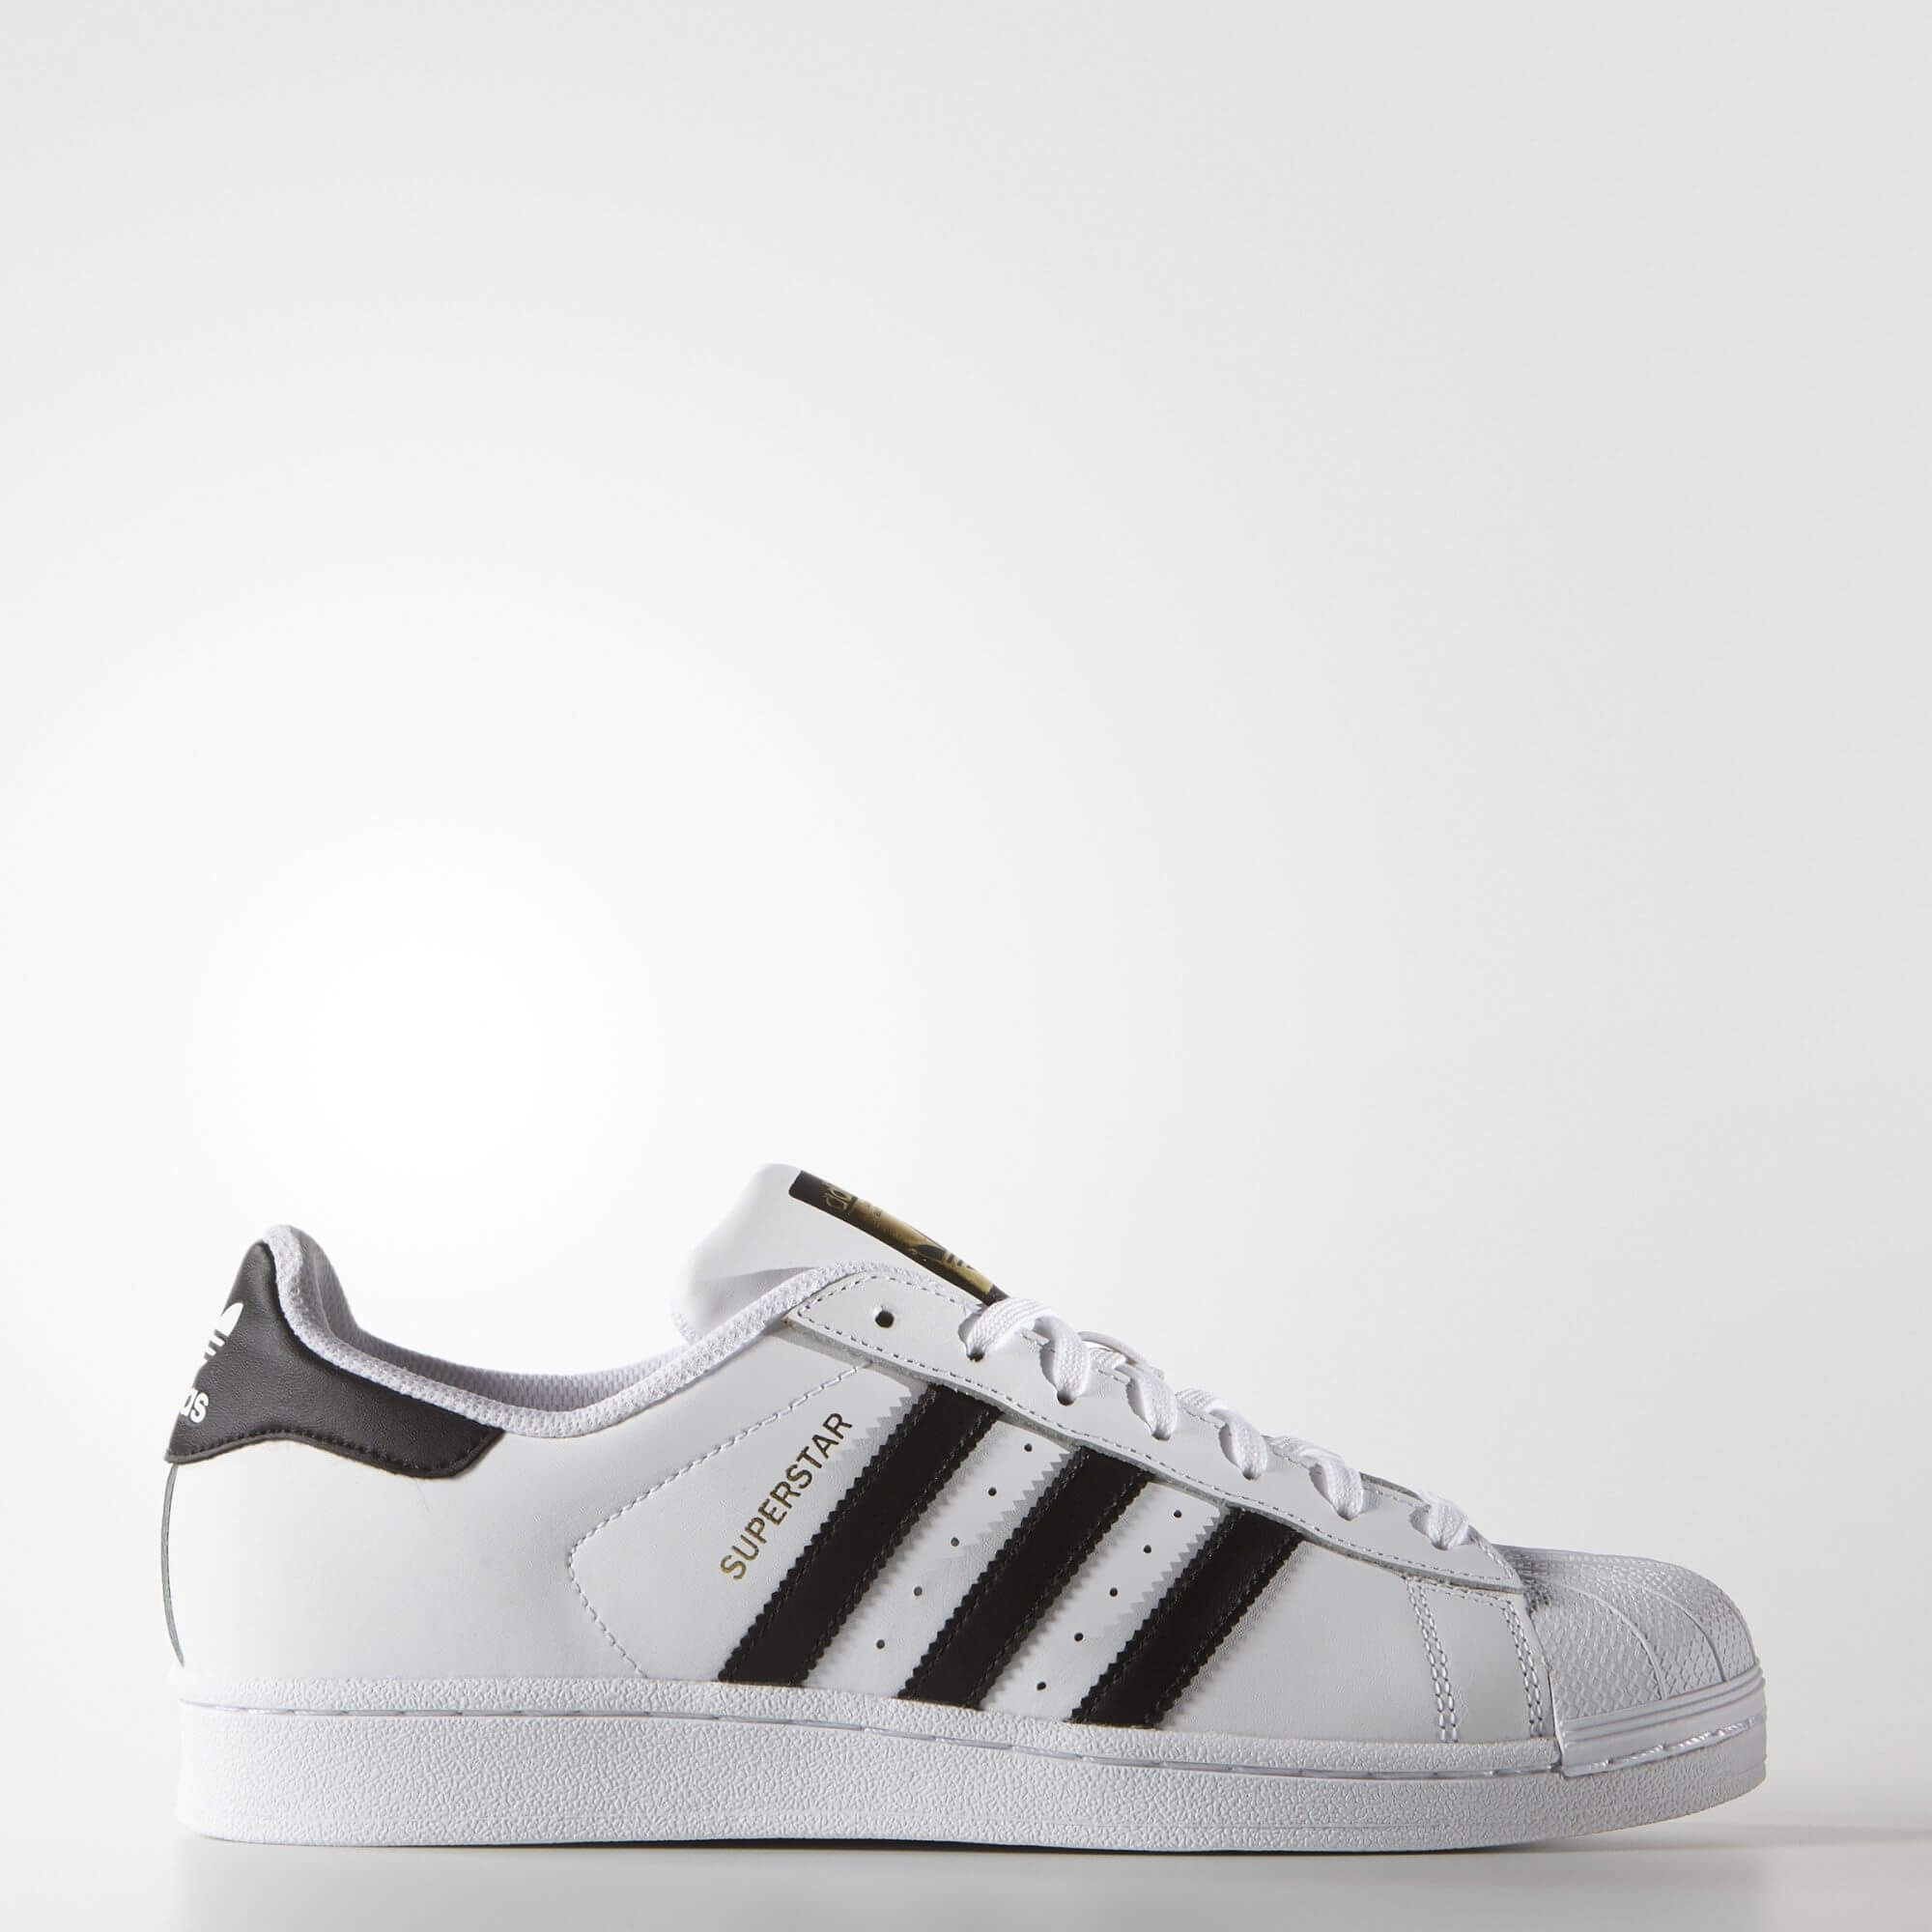 Adidas Superstar flat shoe laces